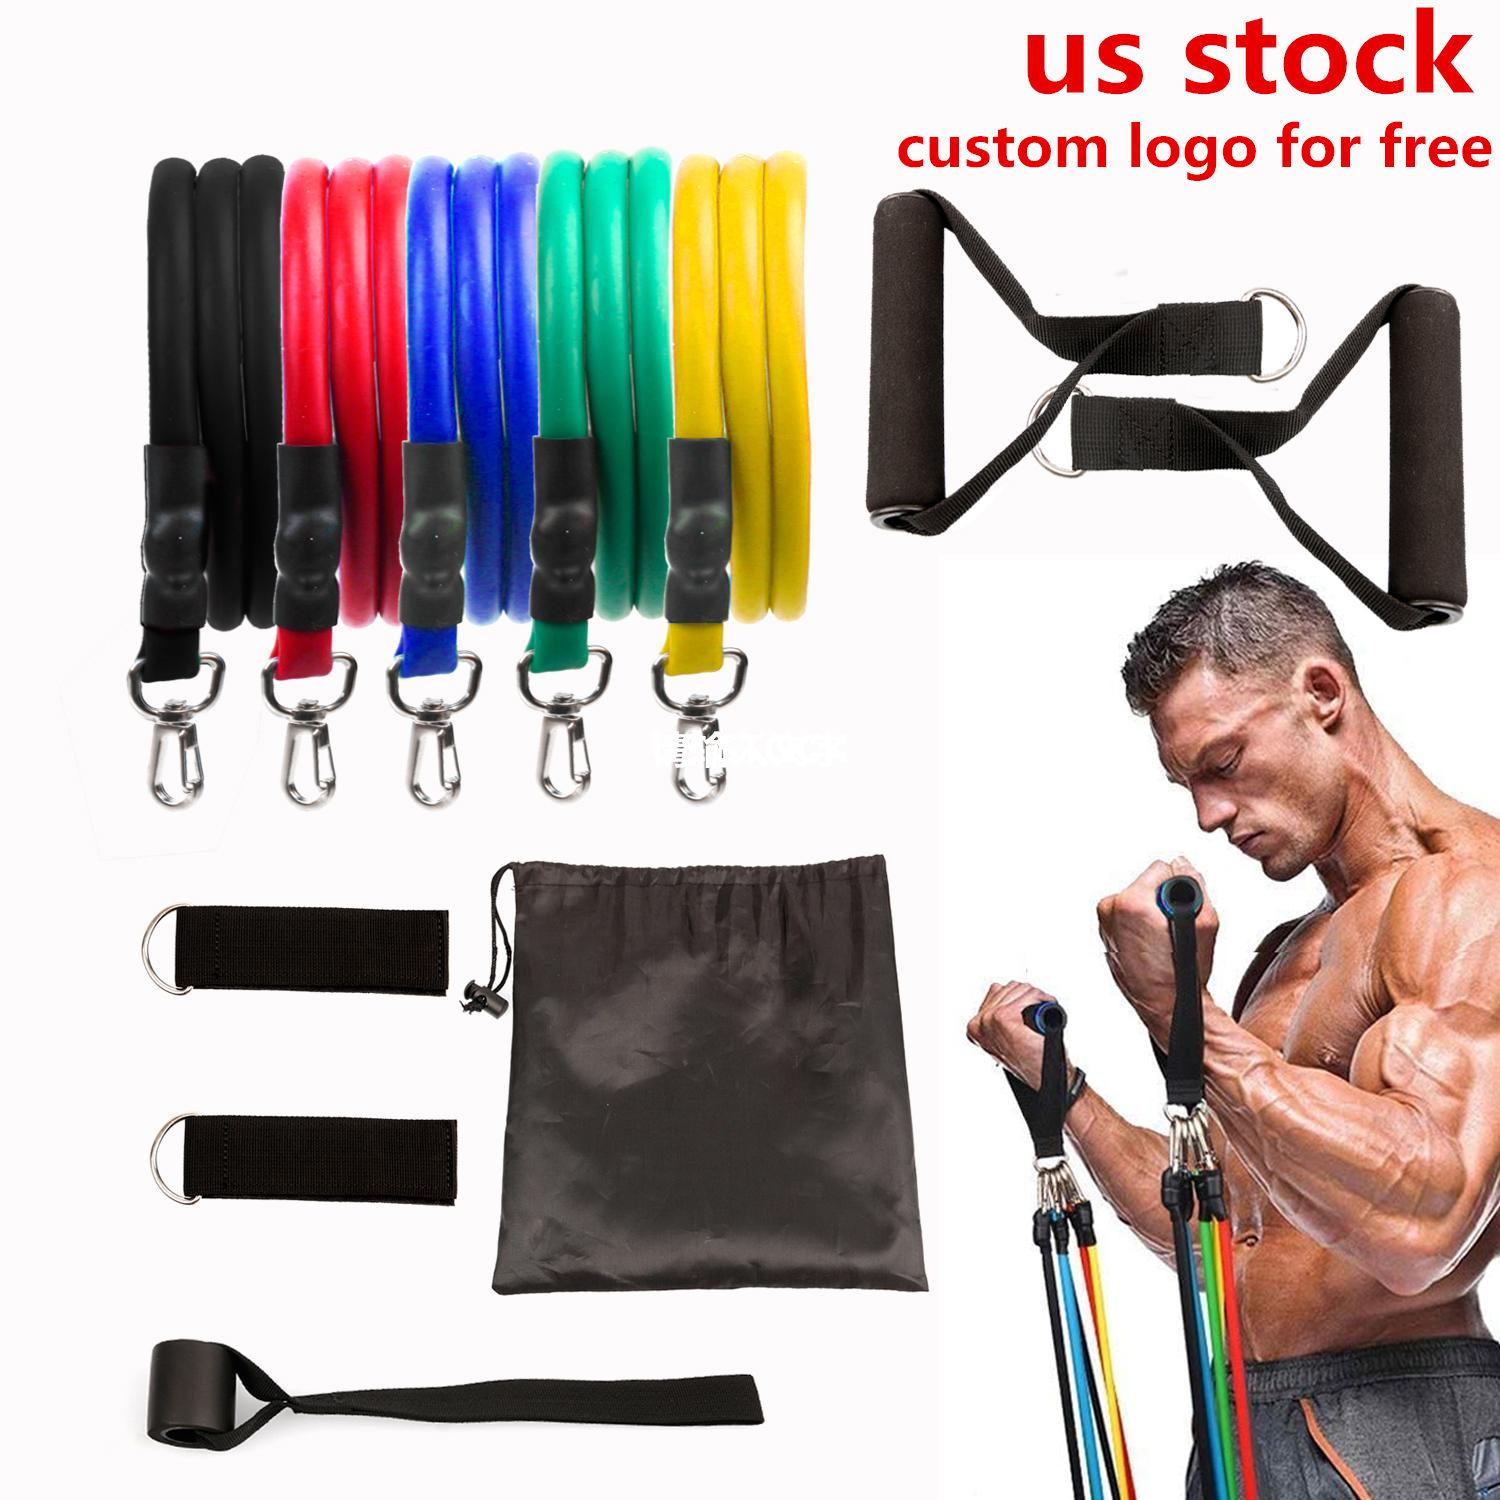 US STOCK, 11 pcs/Set Pull Rope Latex Fitness Exercises Resistance Bands Elastic Exercises Body Fitness Strength Resistance Bands FY7007